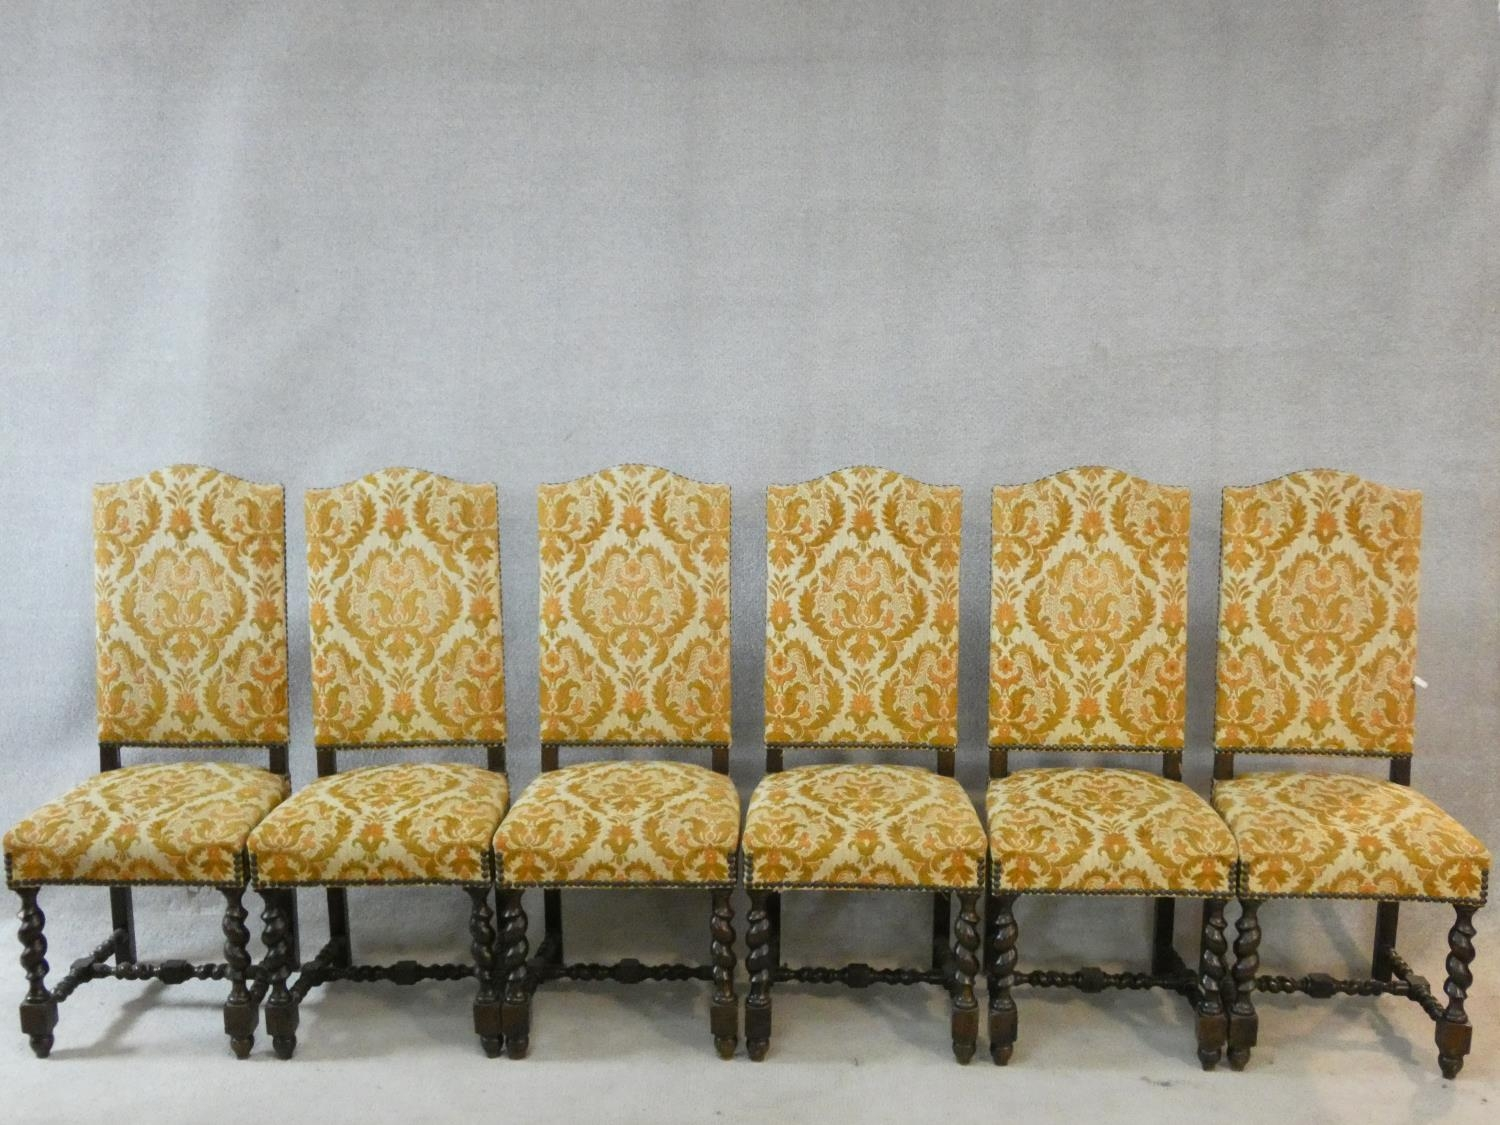 A set of six Jacobean style oak framed high back dining chairs in gold cut floral upholstery on - Image 2 of 14